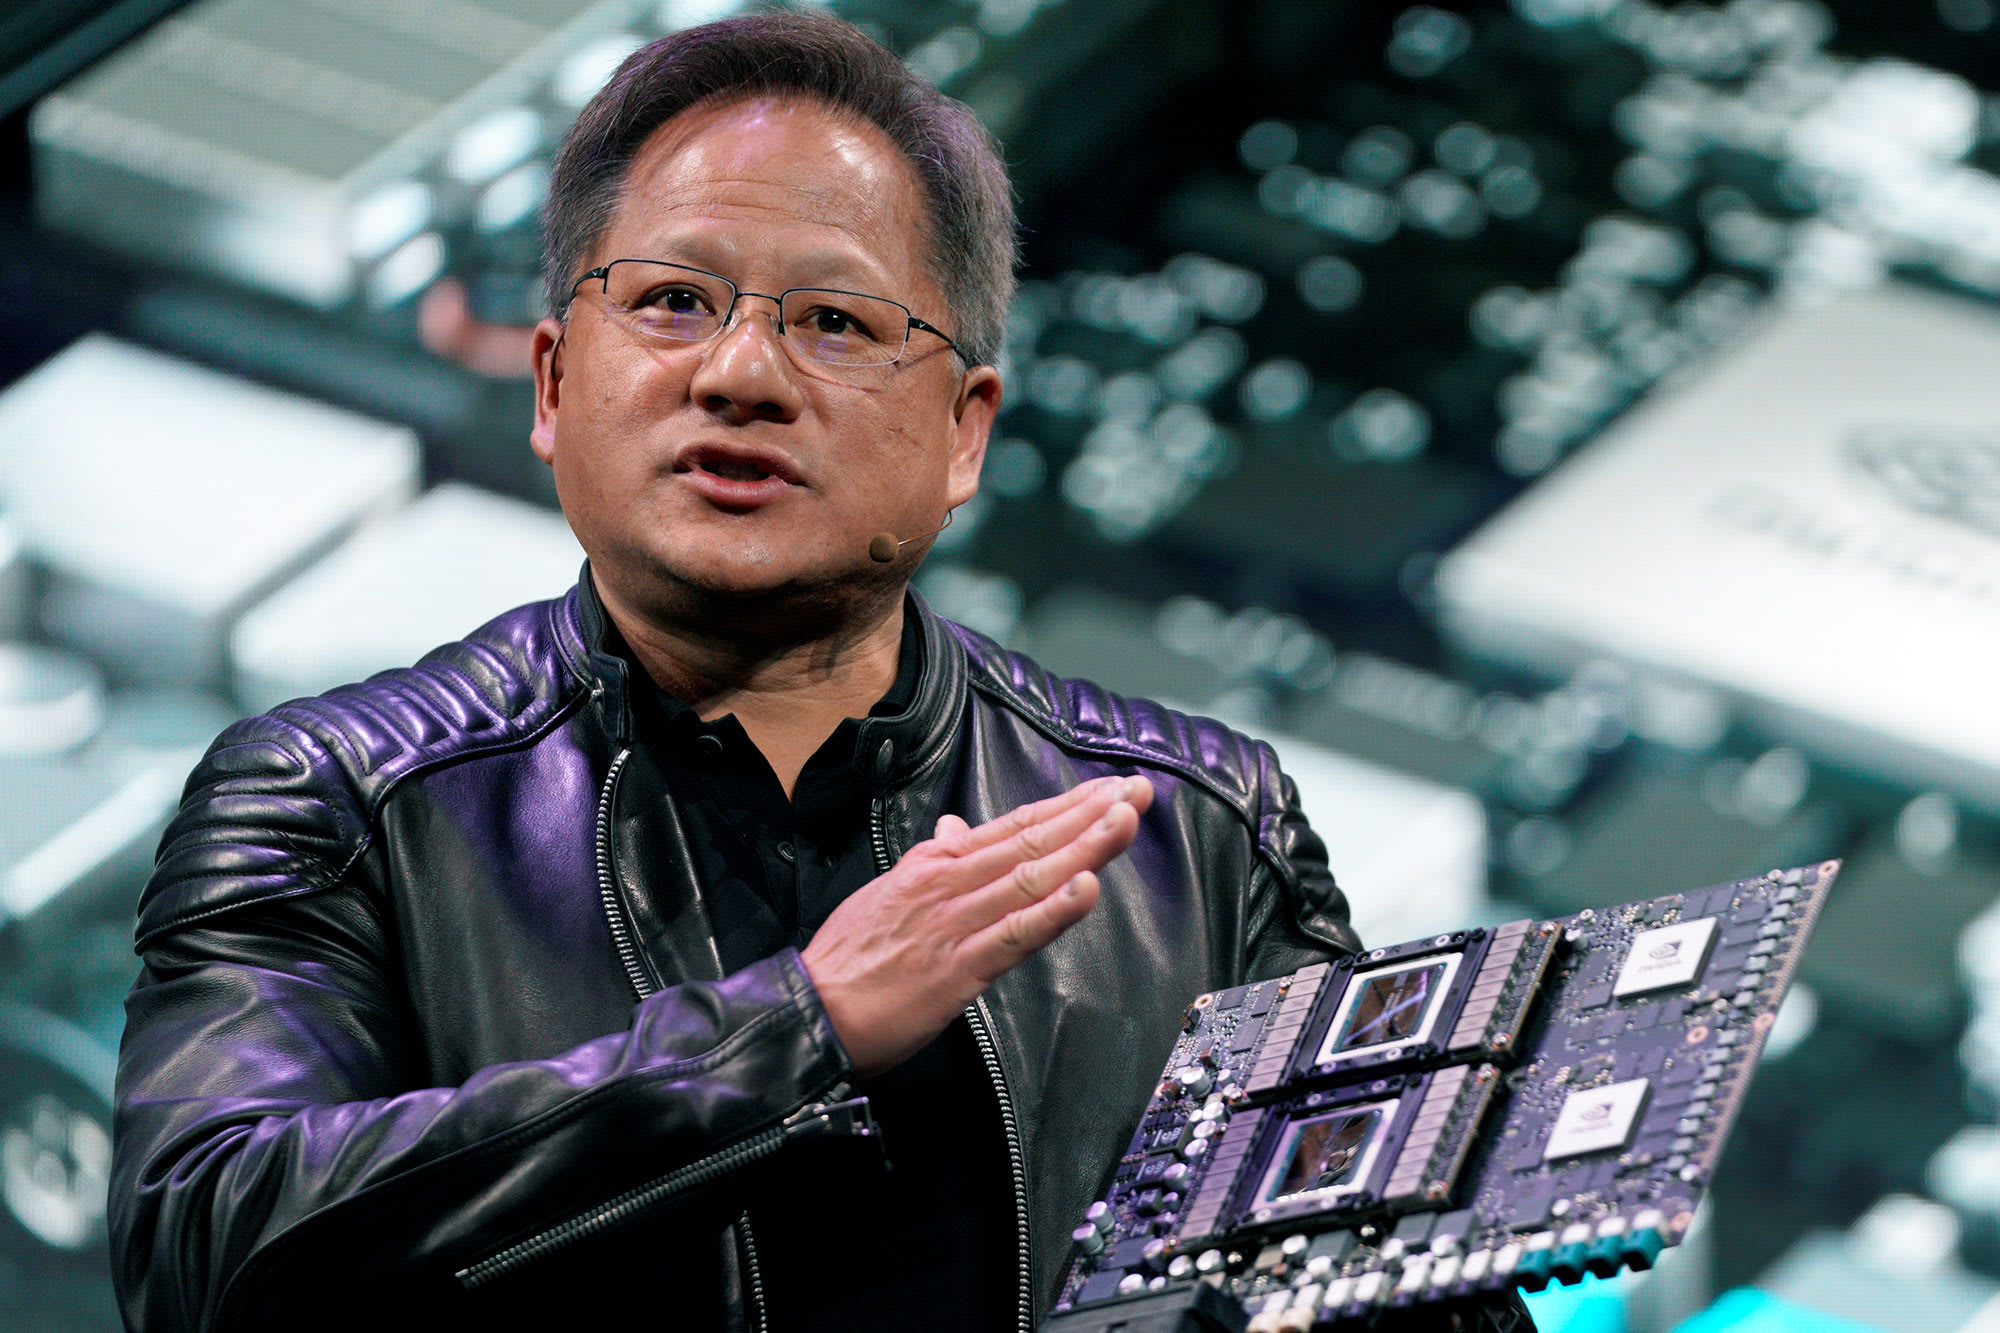 Nvidia buys Arm Holdings from SoftBank for $ 40 billion